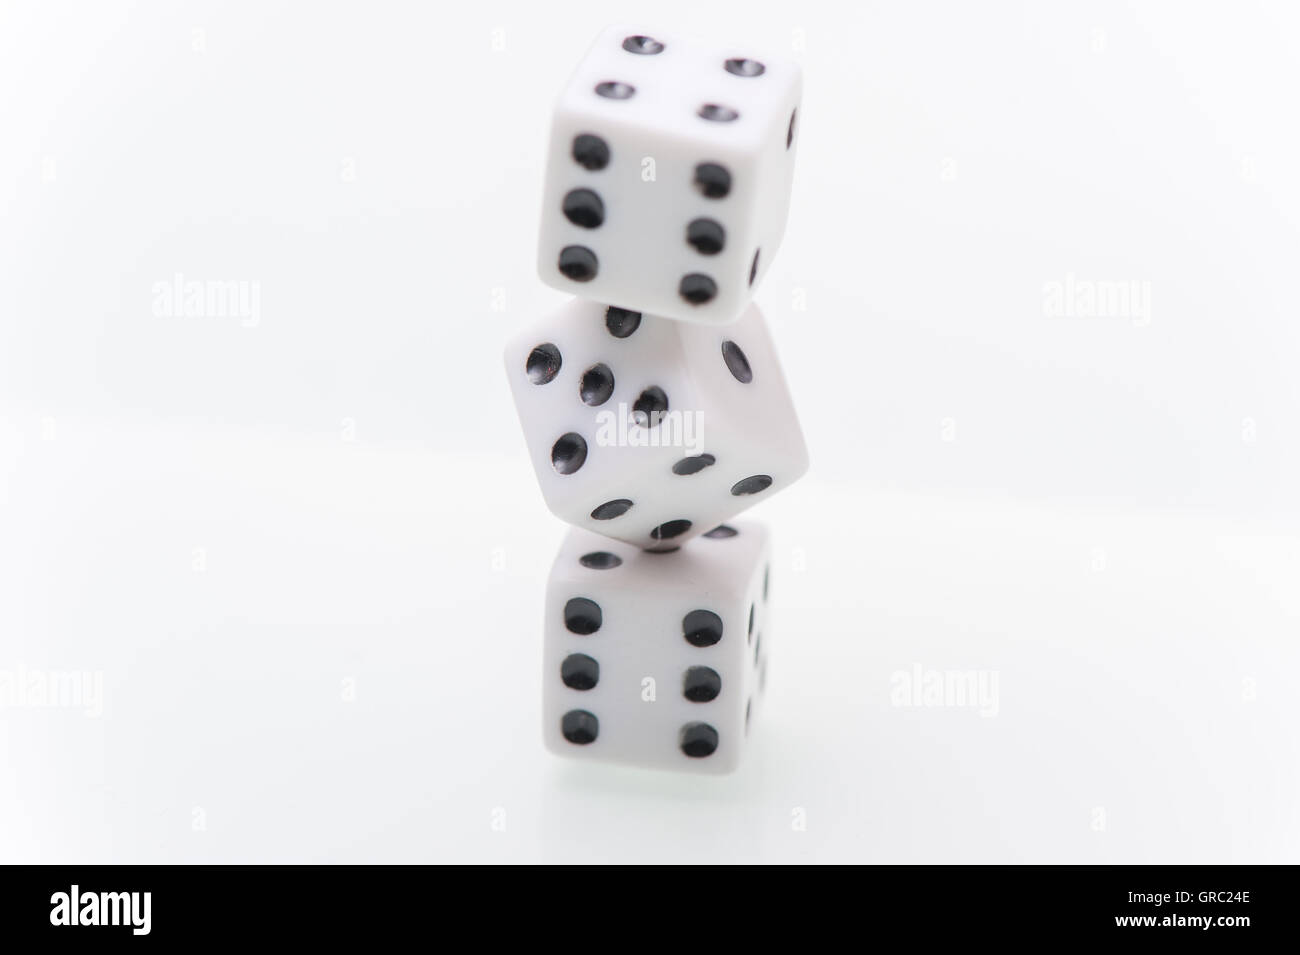 Tower Of 3 White Dice On White Background, Close Up - Stock Image